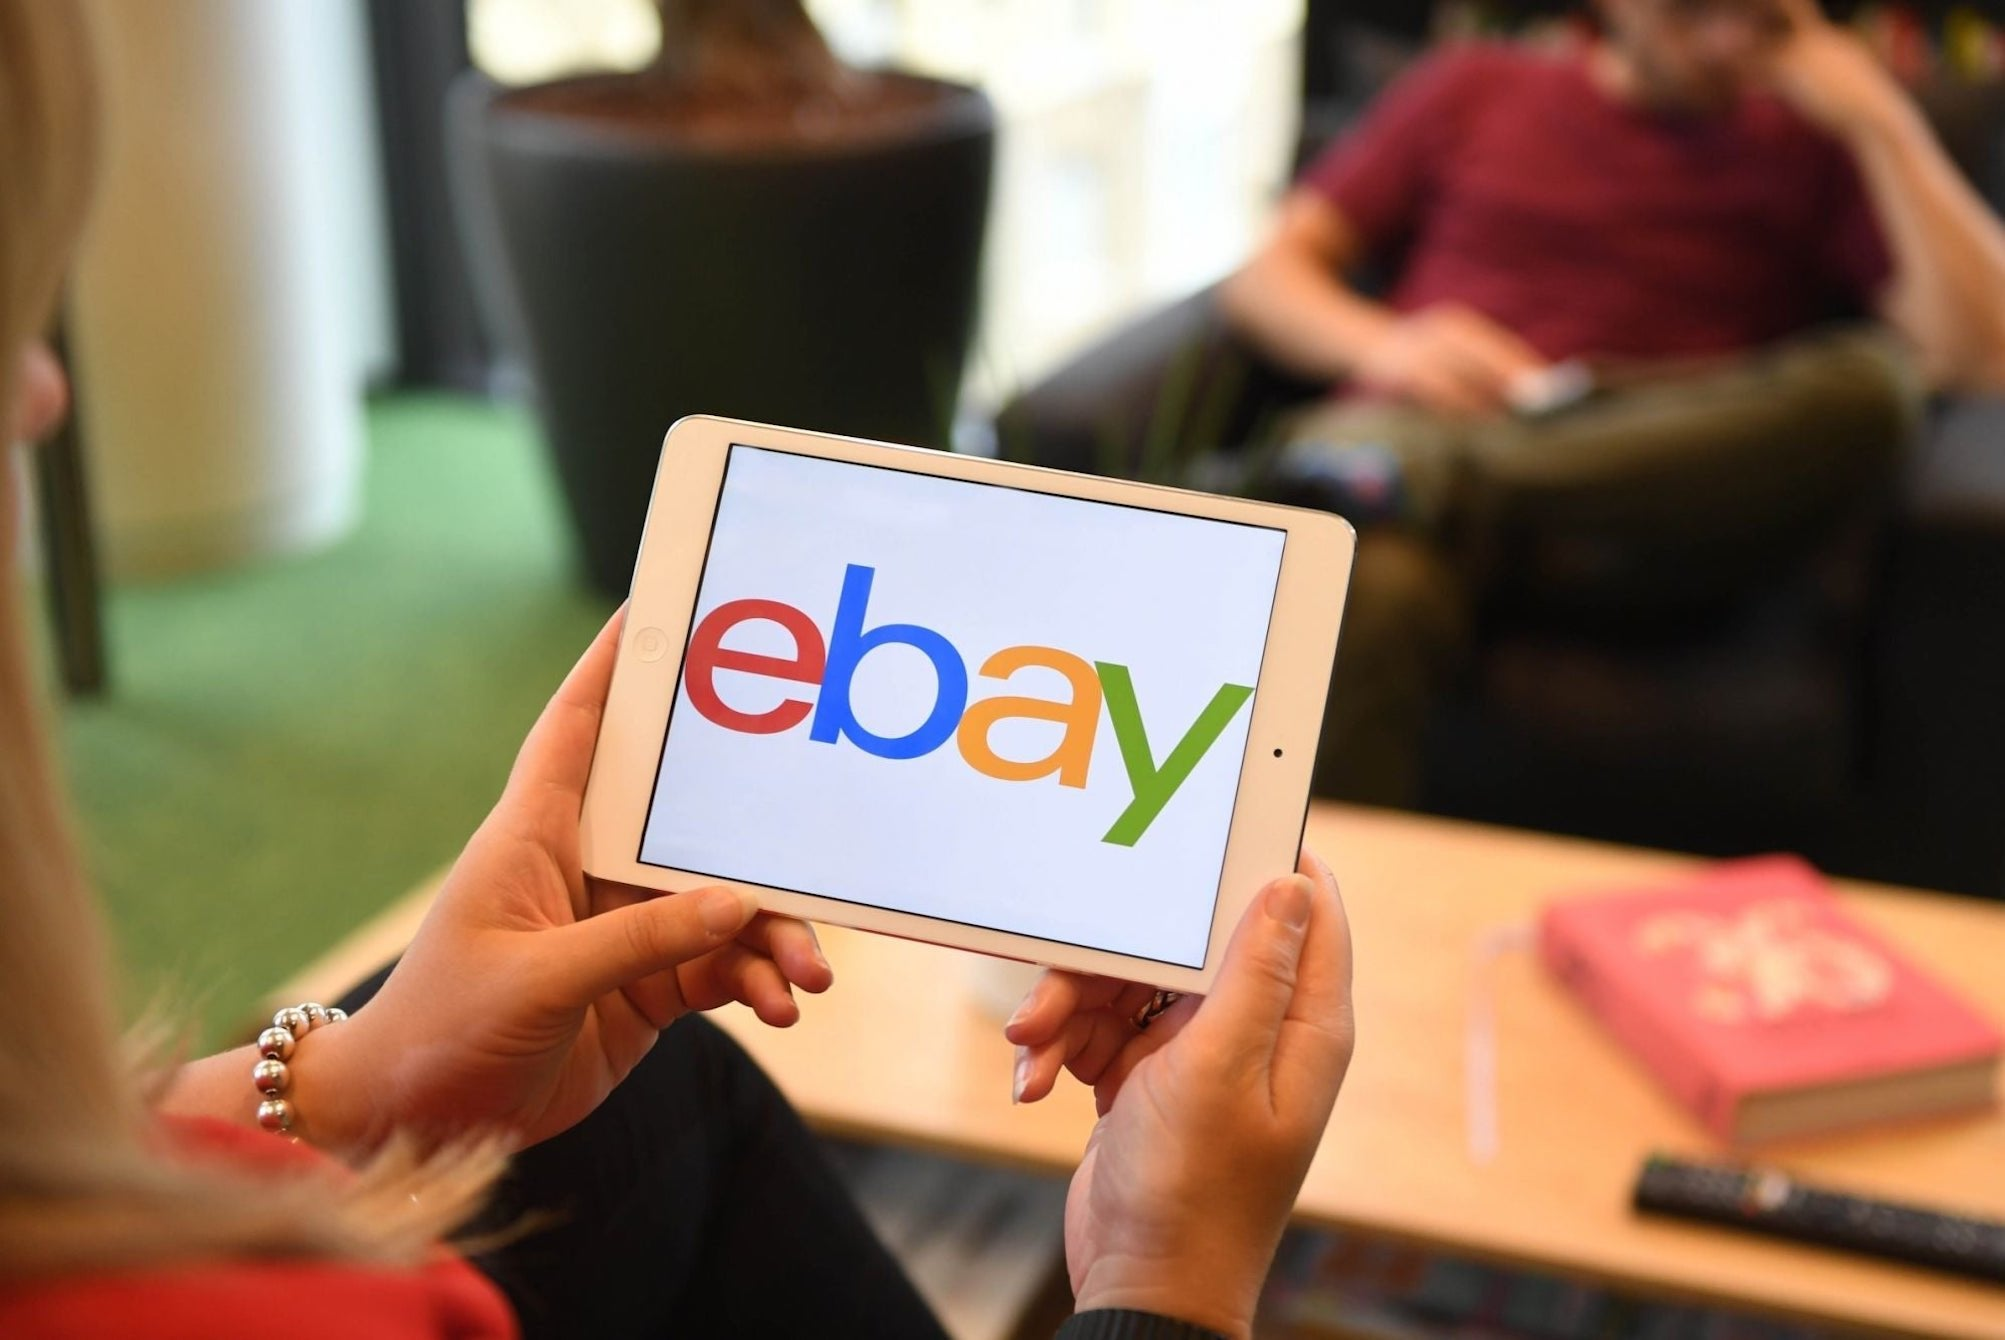 Simple Tactics Anyone Can Use To Make Extra Money With Ebay May 19 2020 Entrepreneur Events